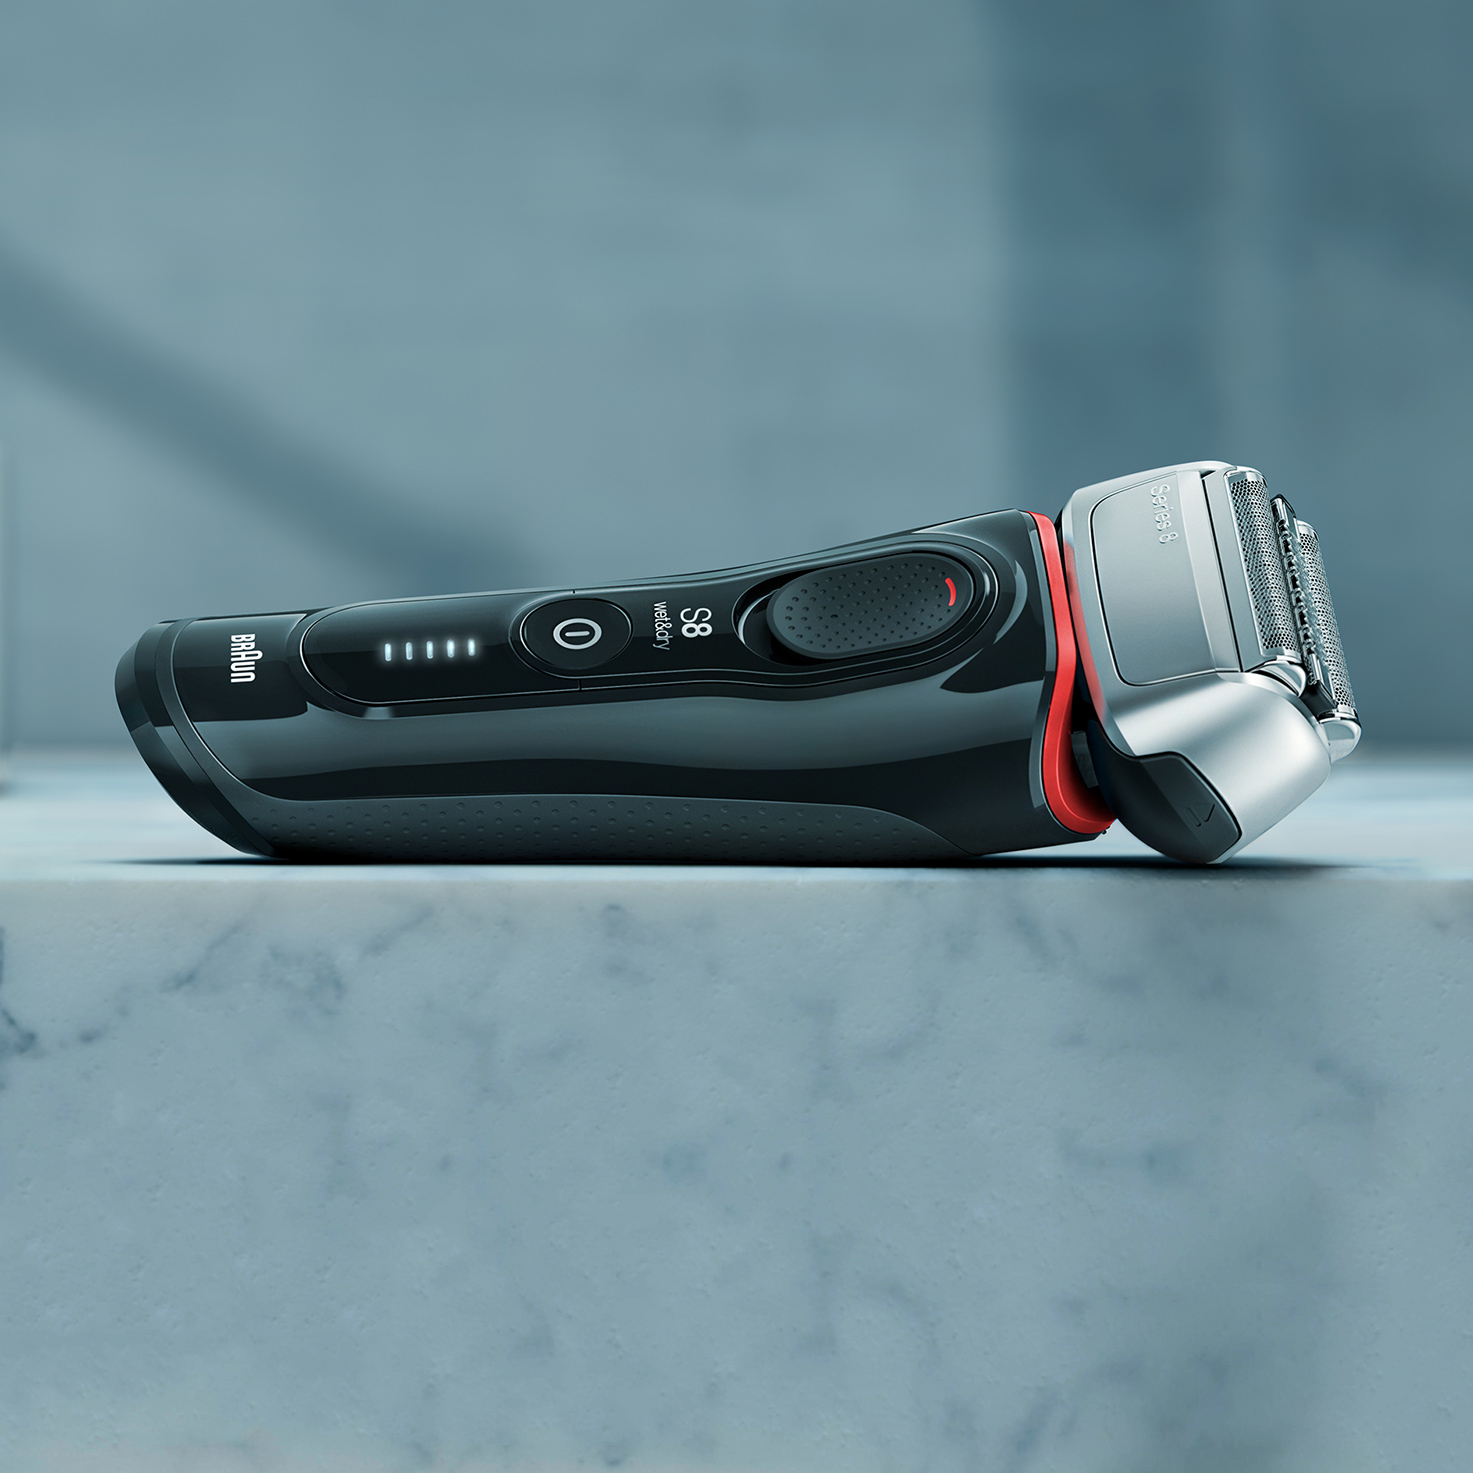 Series 8 8320s shaver